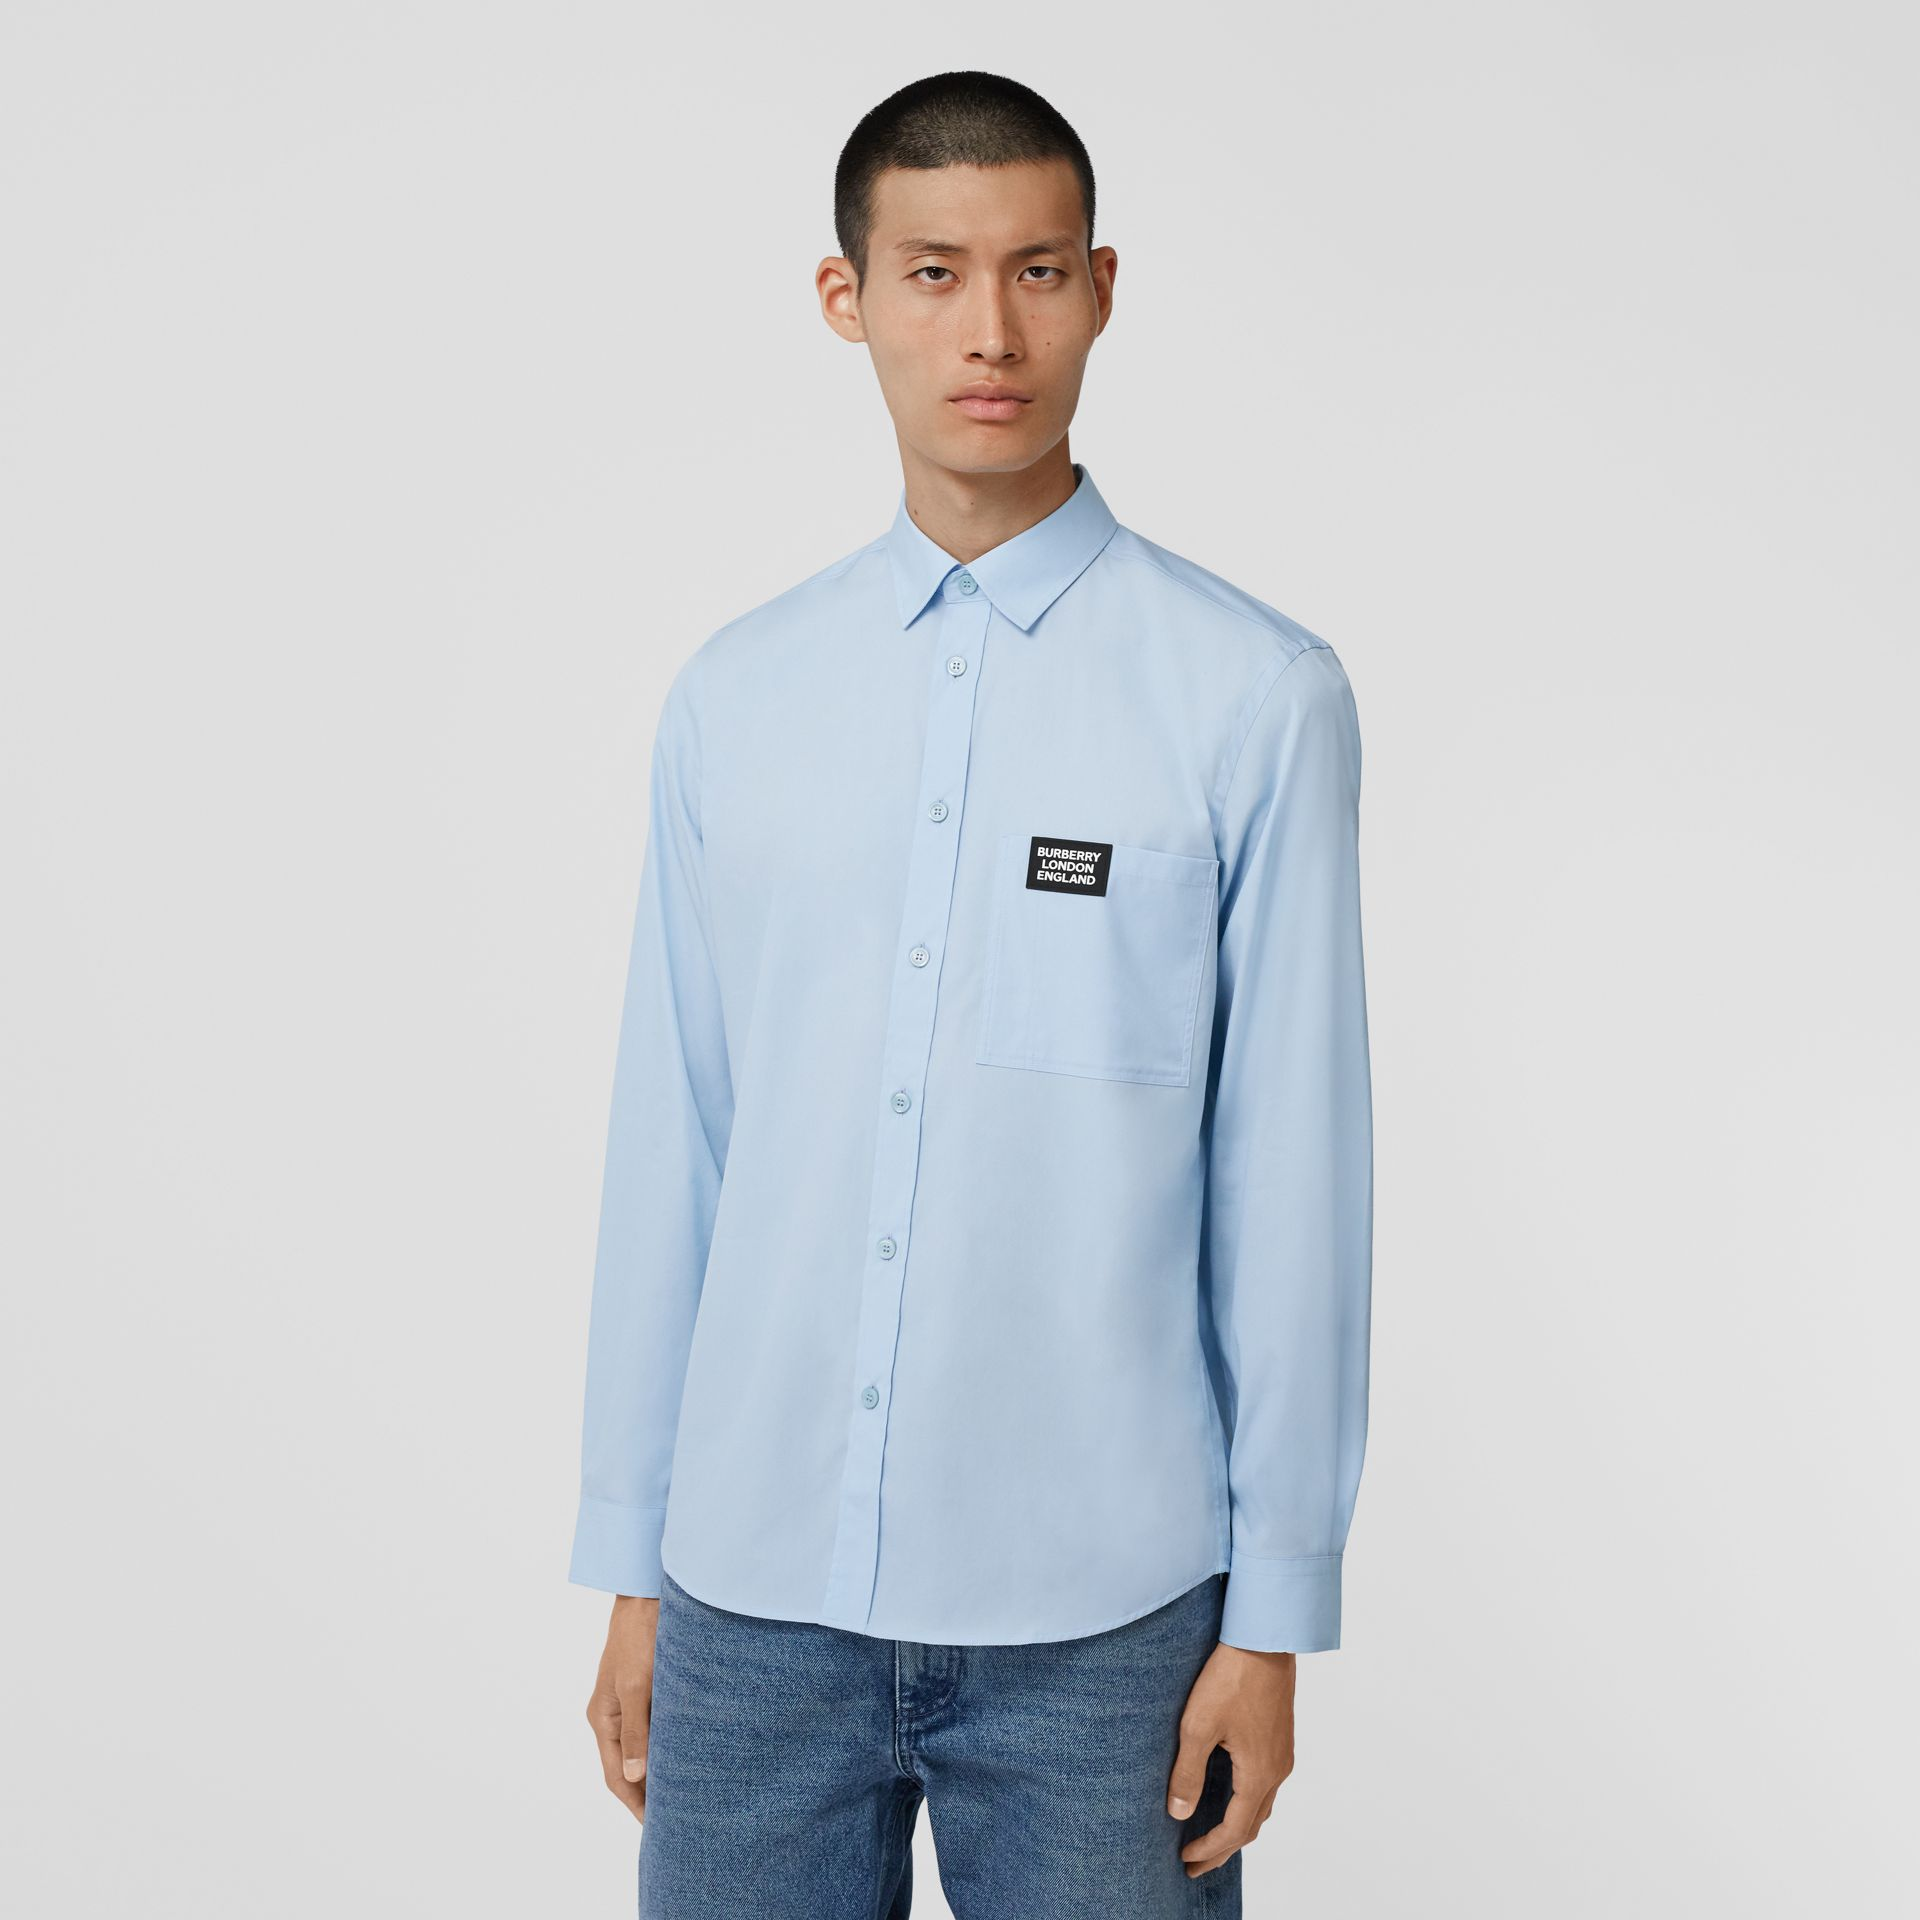 Logo Detail Stretch Cotton Poplin Shirt in Pale Blue - Men | Burberry Hong Kong S.A.R - gallery image 4